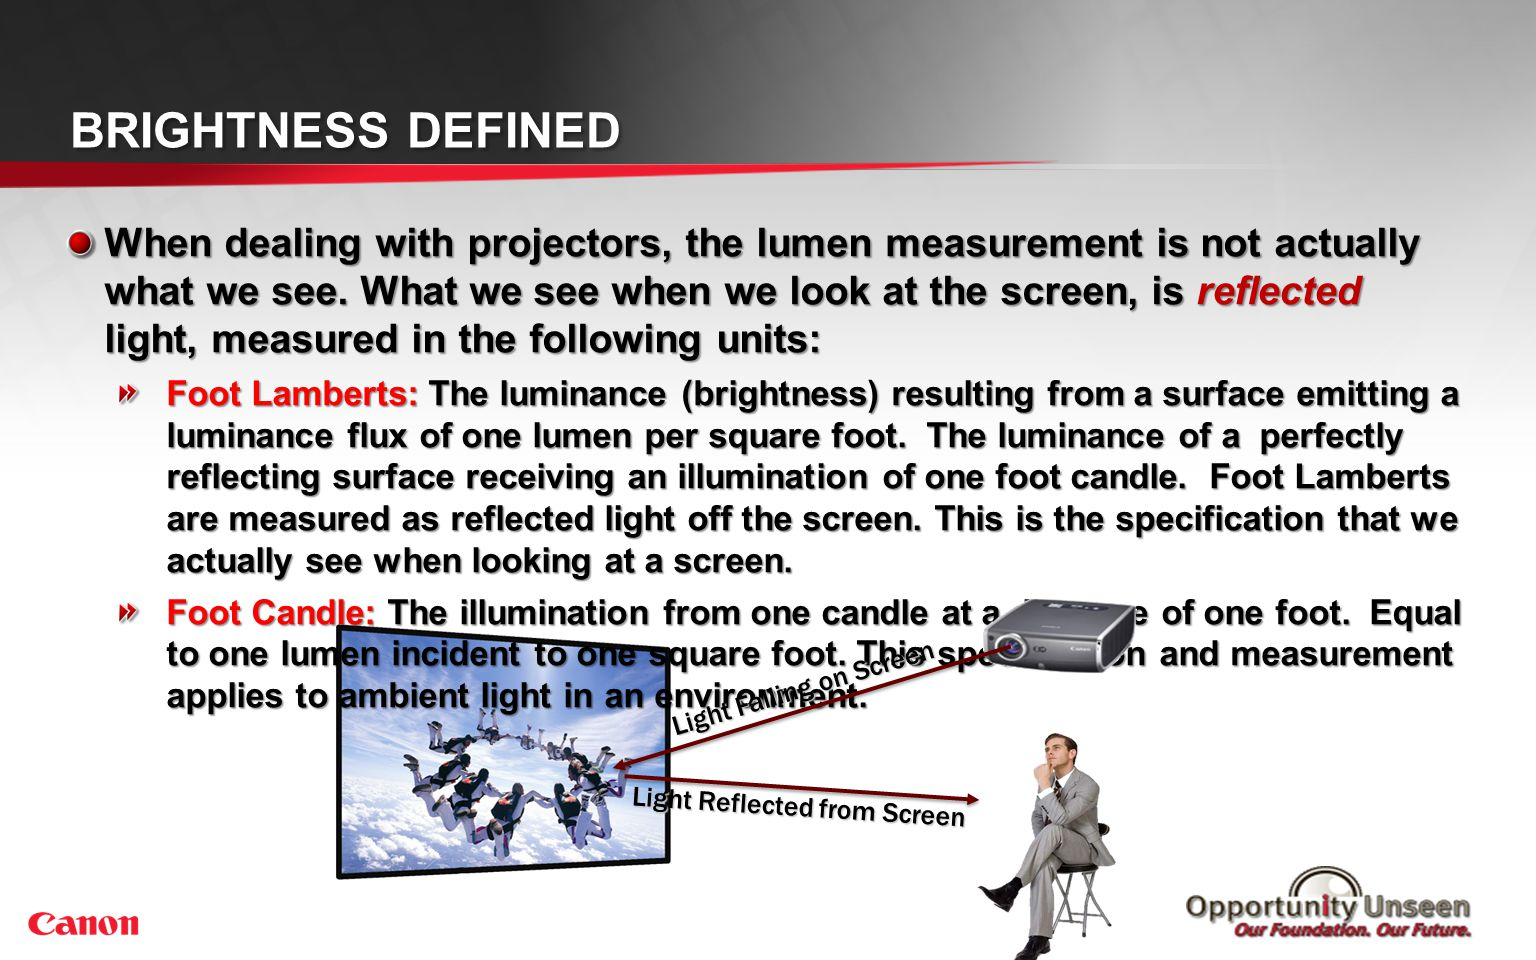 When dealing with projectors, the lumen measurement is not actually what we see. What we see when we look at the screen, is reflected light, measured